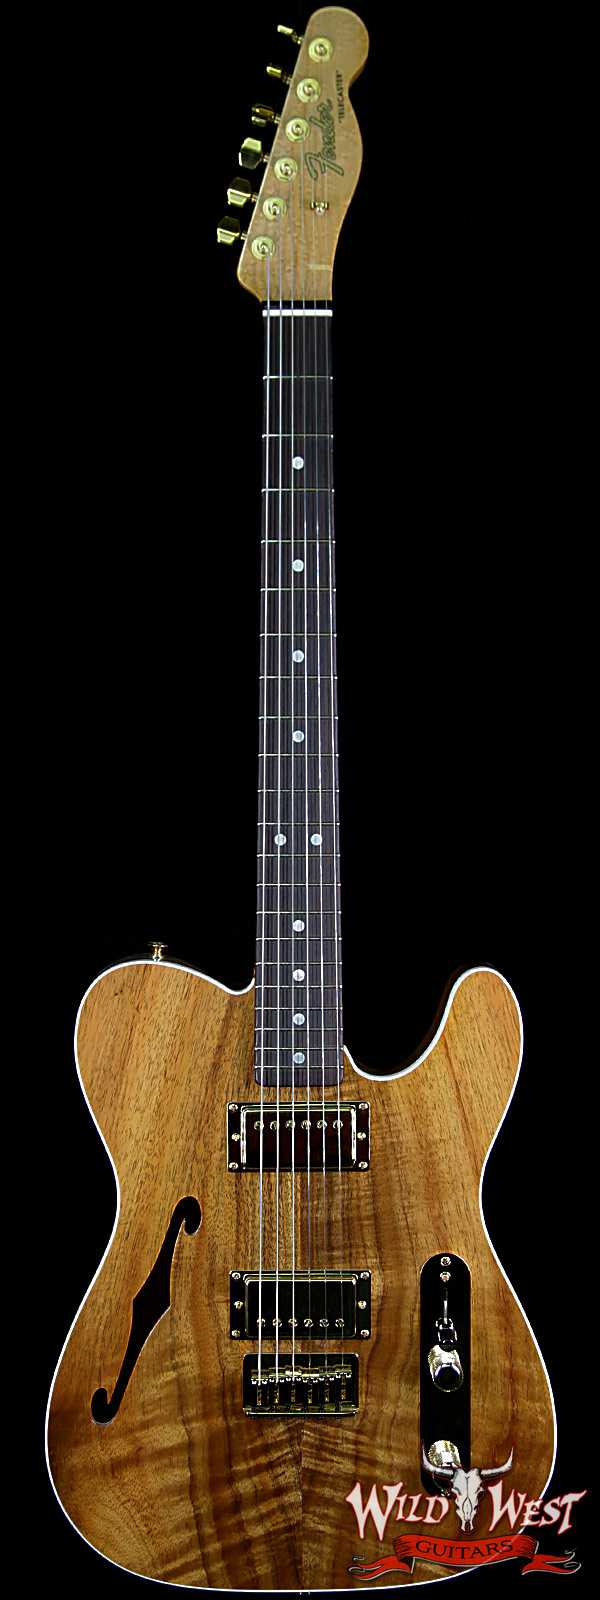 Fender Custom Shop Paul Waller Masterbuilt Artisan Thinline Telecaster HH Koa Top Birdseye Neck Rosewood Board